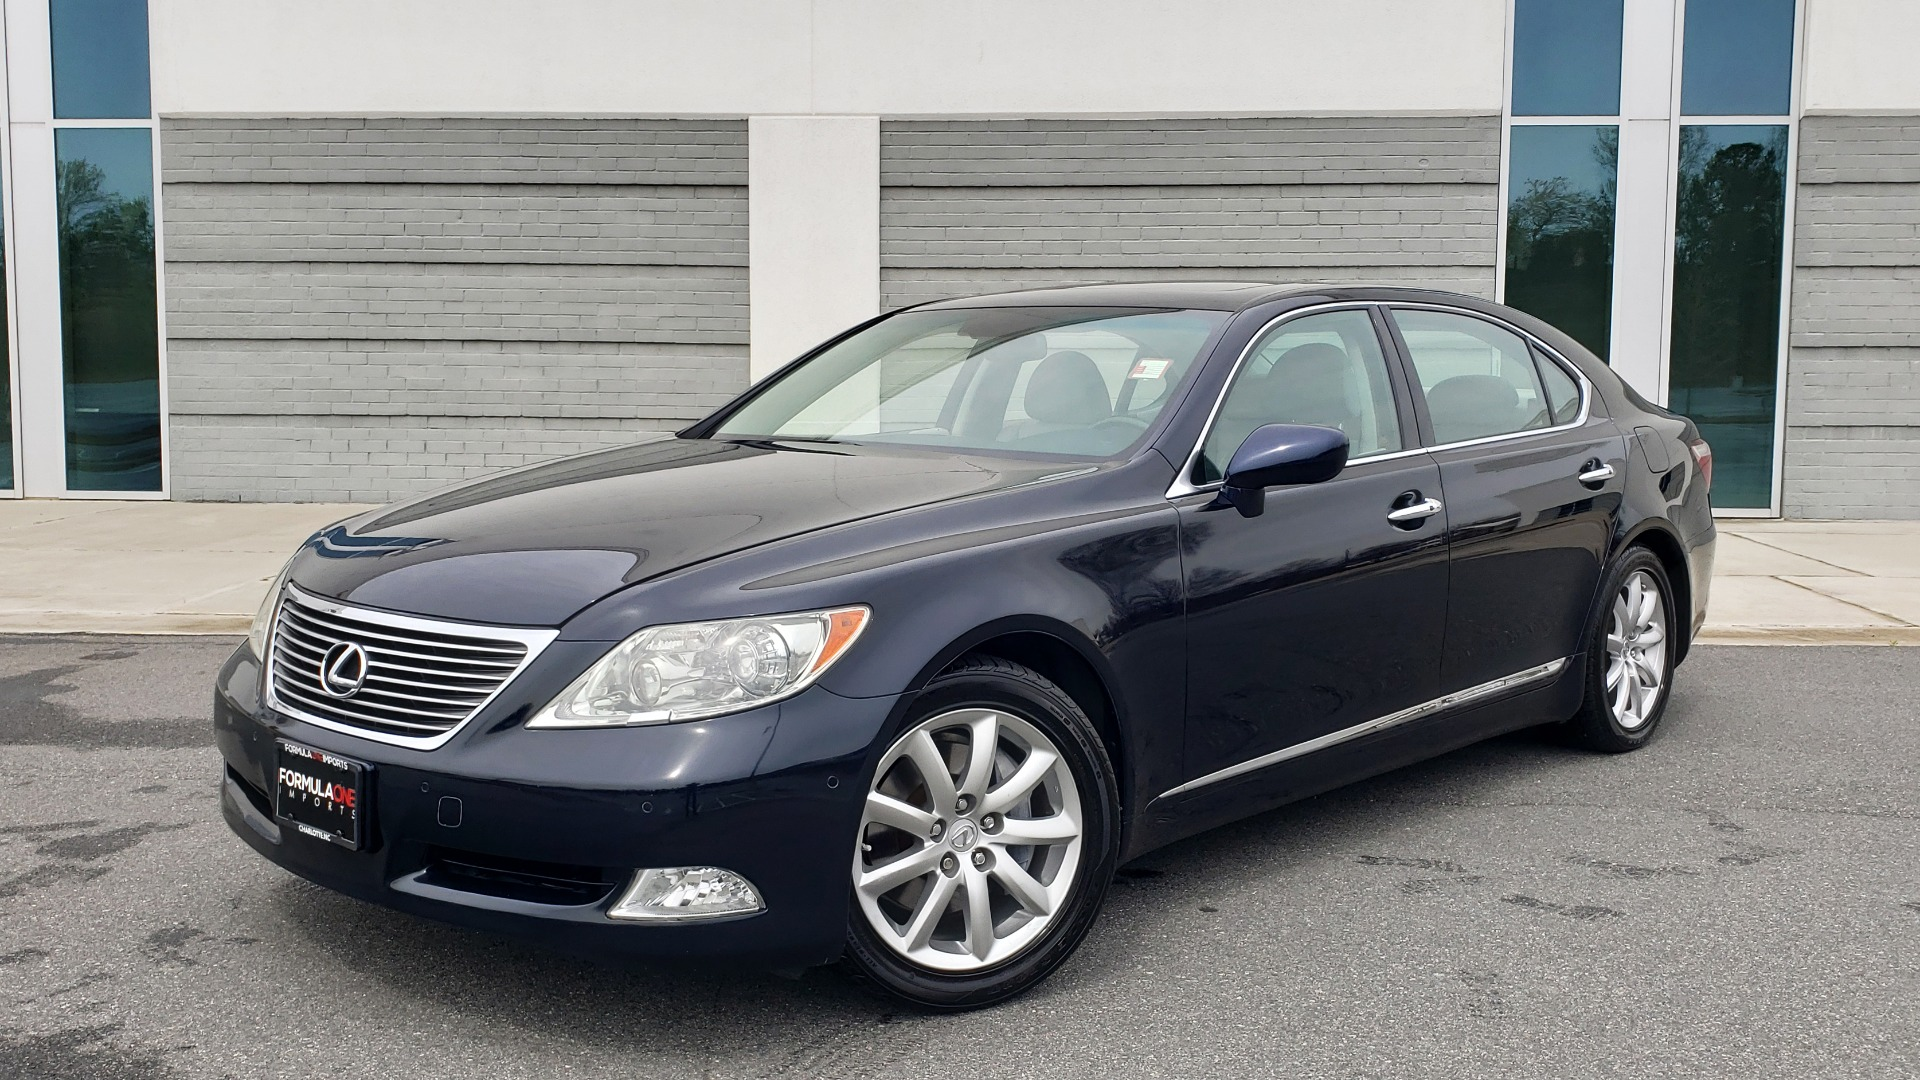 Used 2008 Lexus LS 460 LWB LUXURY SEDAN / MARK LEVINSON / INT PARK ASST / REARVIEW for sale Sold at Formula Imports in Charlotte NC 28227 1